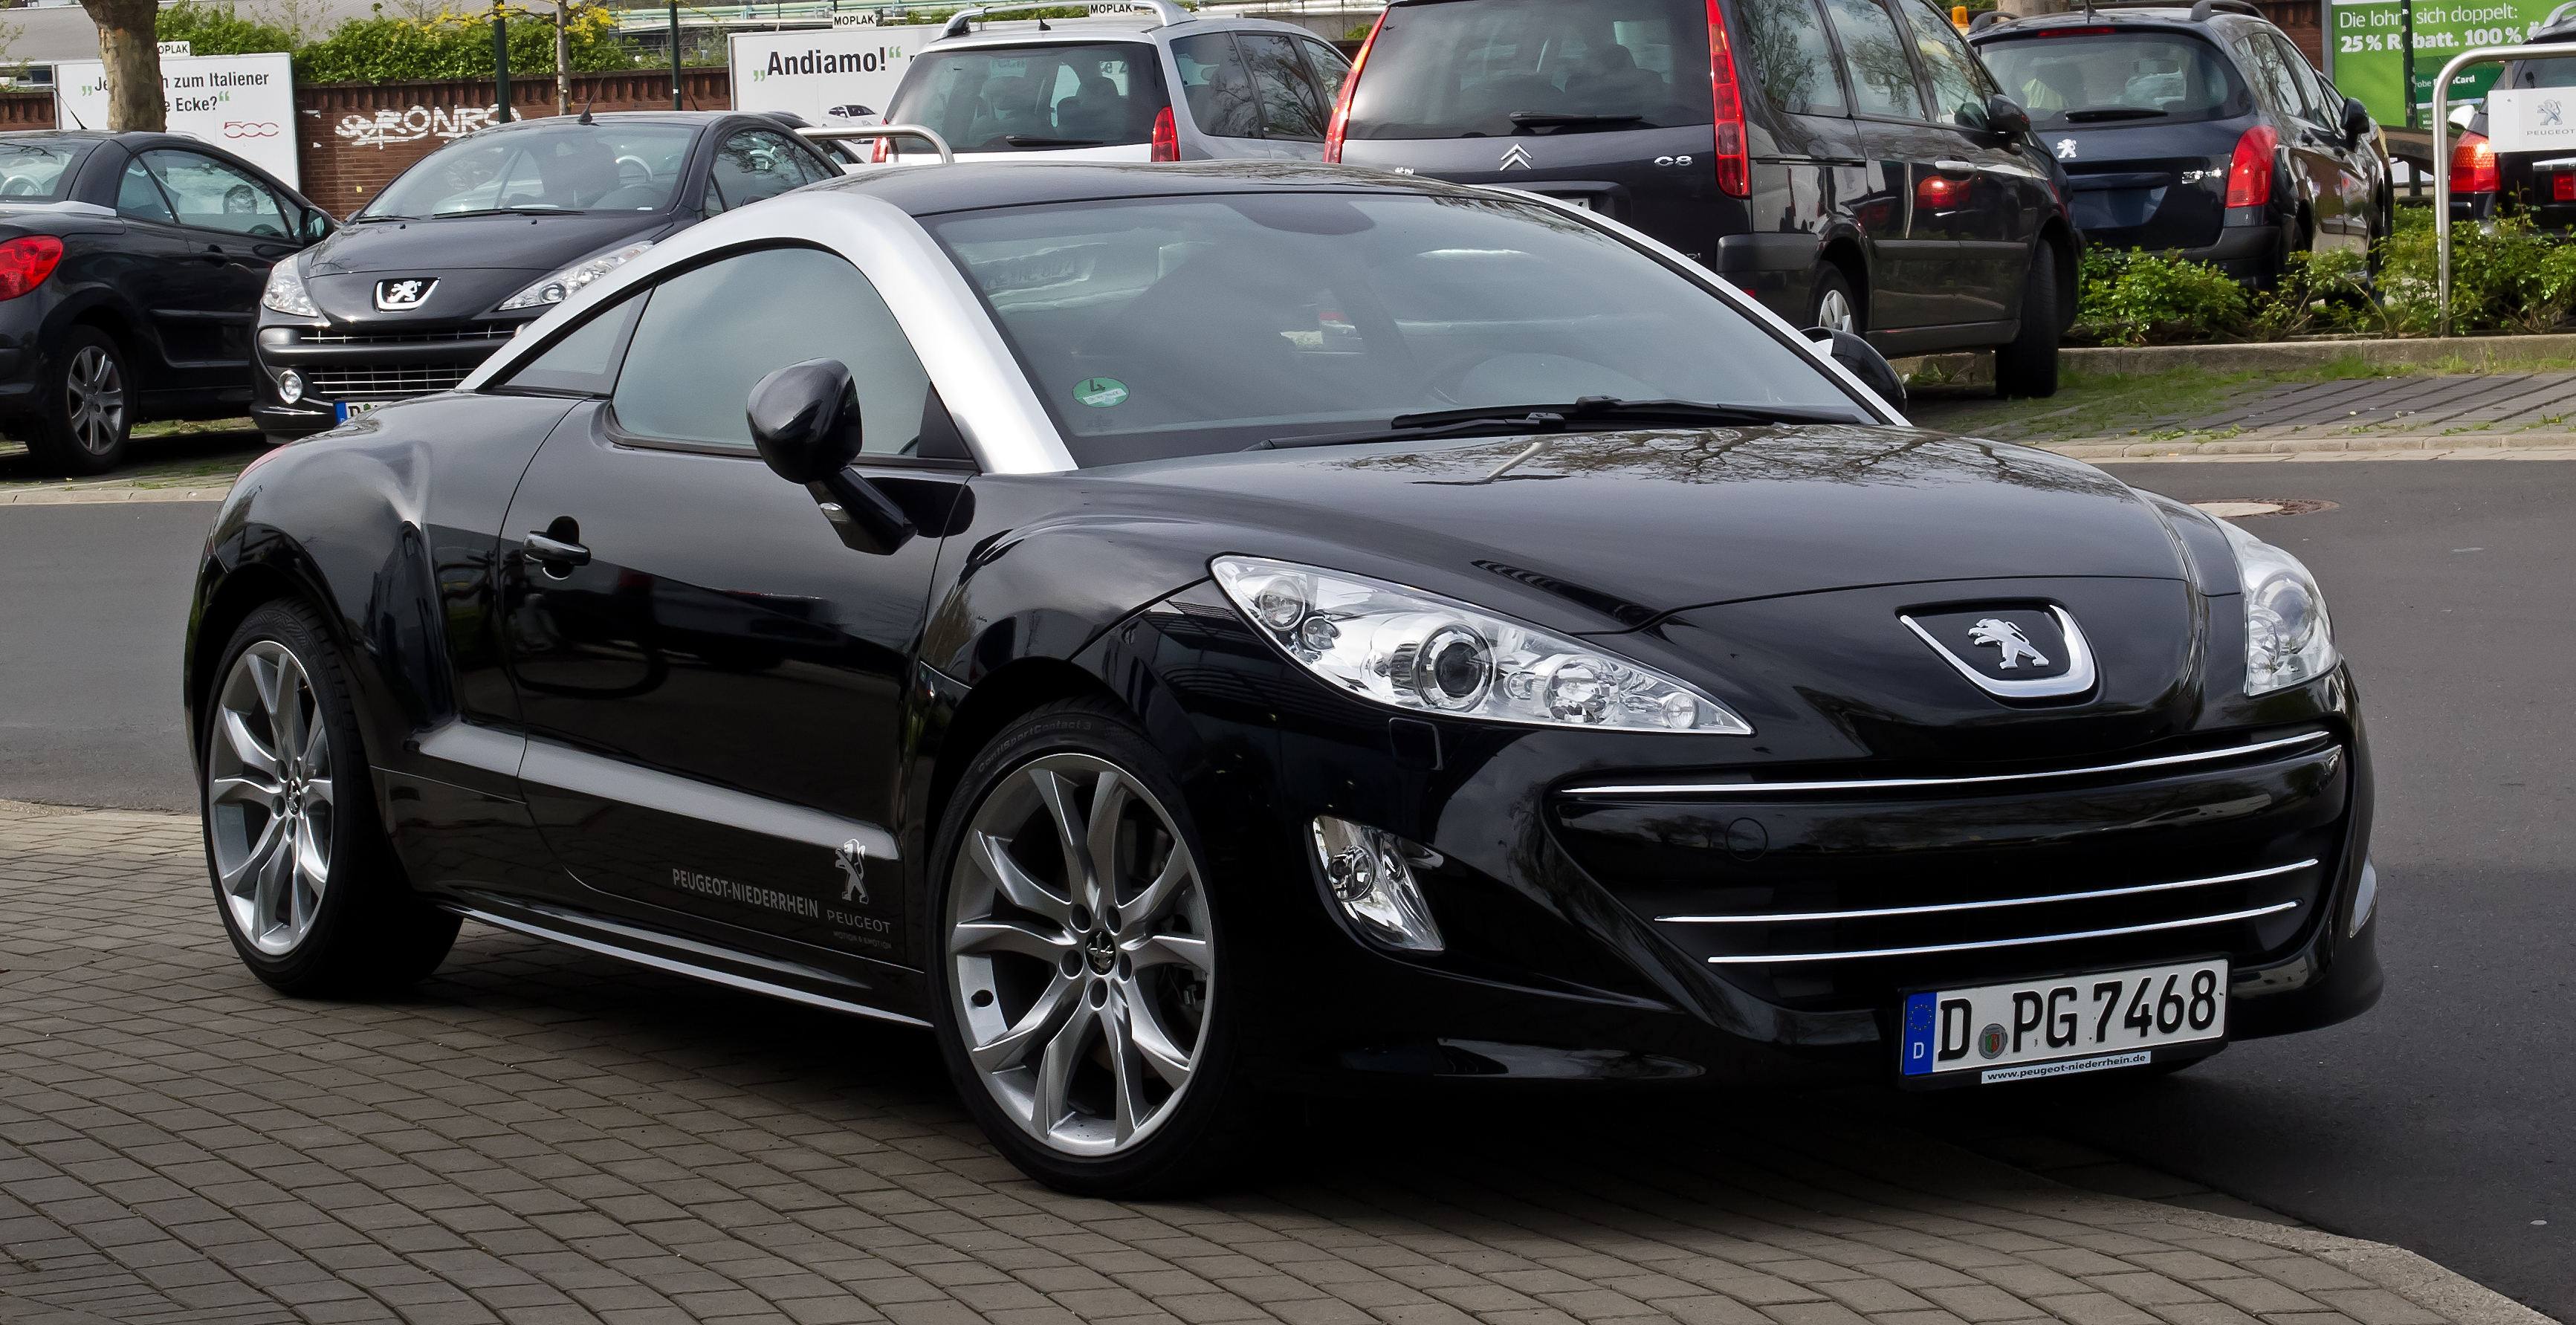 file peugeot rcz hdi fap 165 frontansicht 28 april 2012 d wikimedia commons. Black Bedroom Furniture Sets. Home Design Ideas